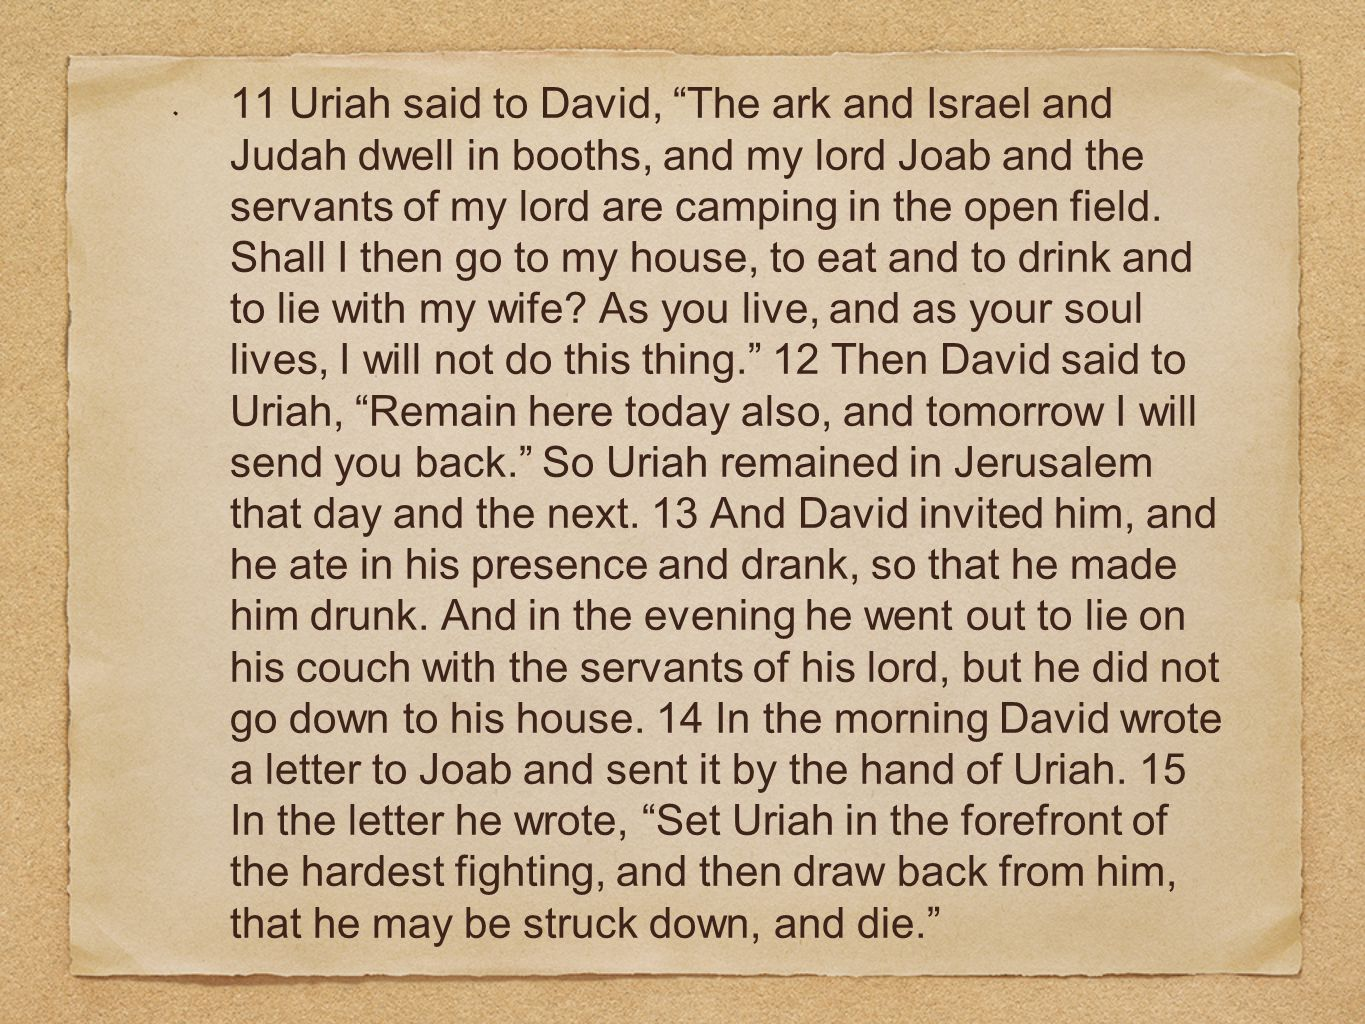 """11 Uriah said to David, """"The ark and Israel and Judah dwell in booths, and my lord Joab and the servants of my lord are camping in the open field. Sha"""